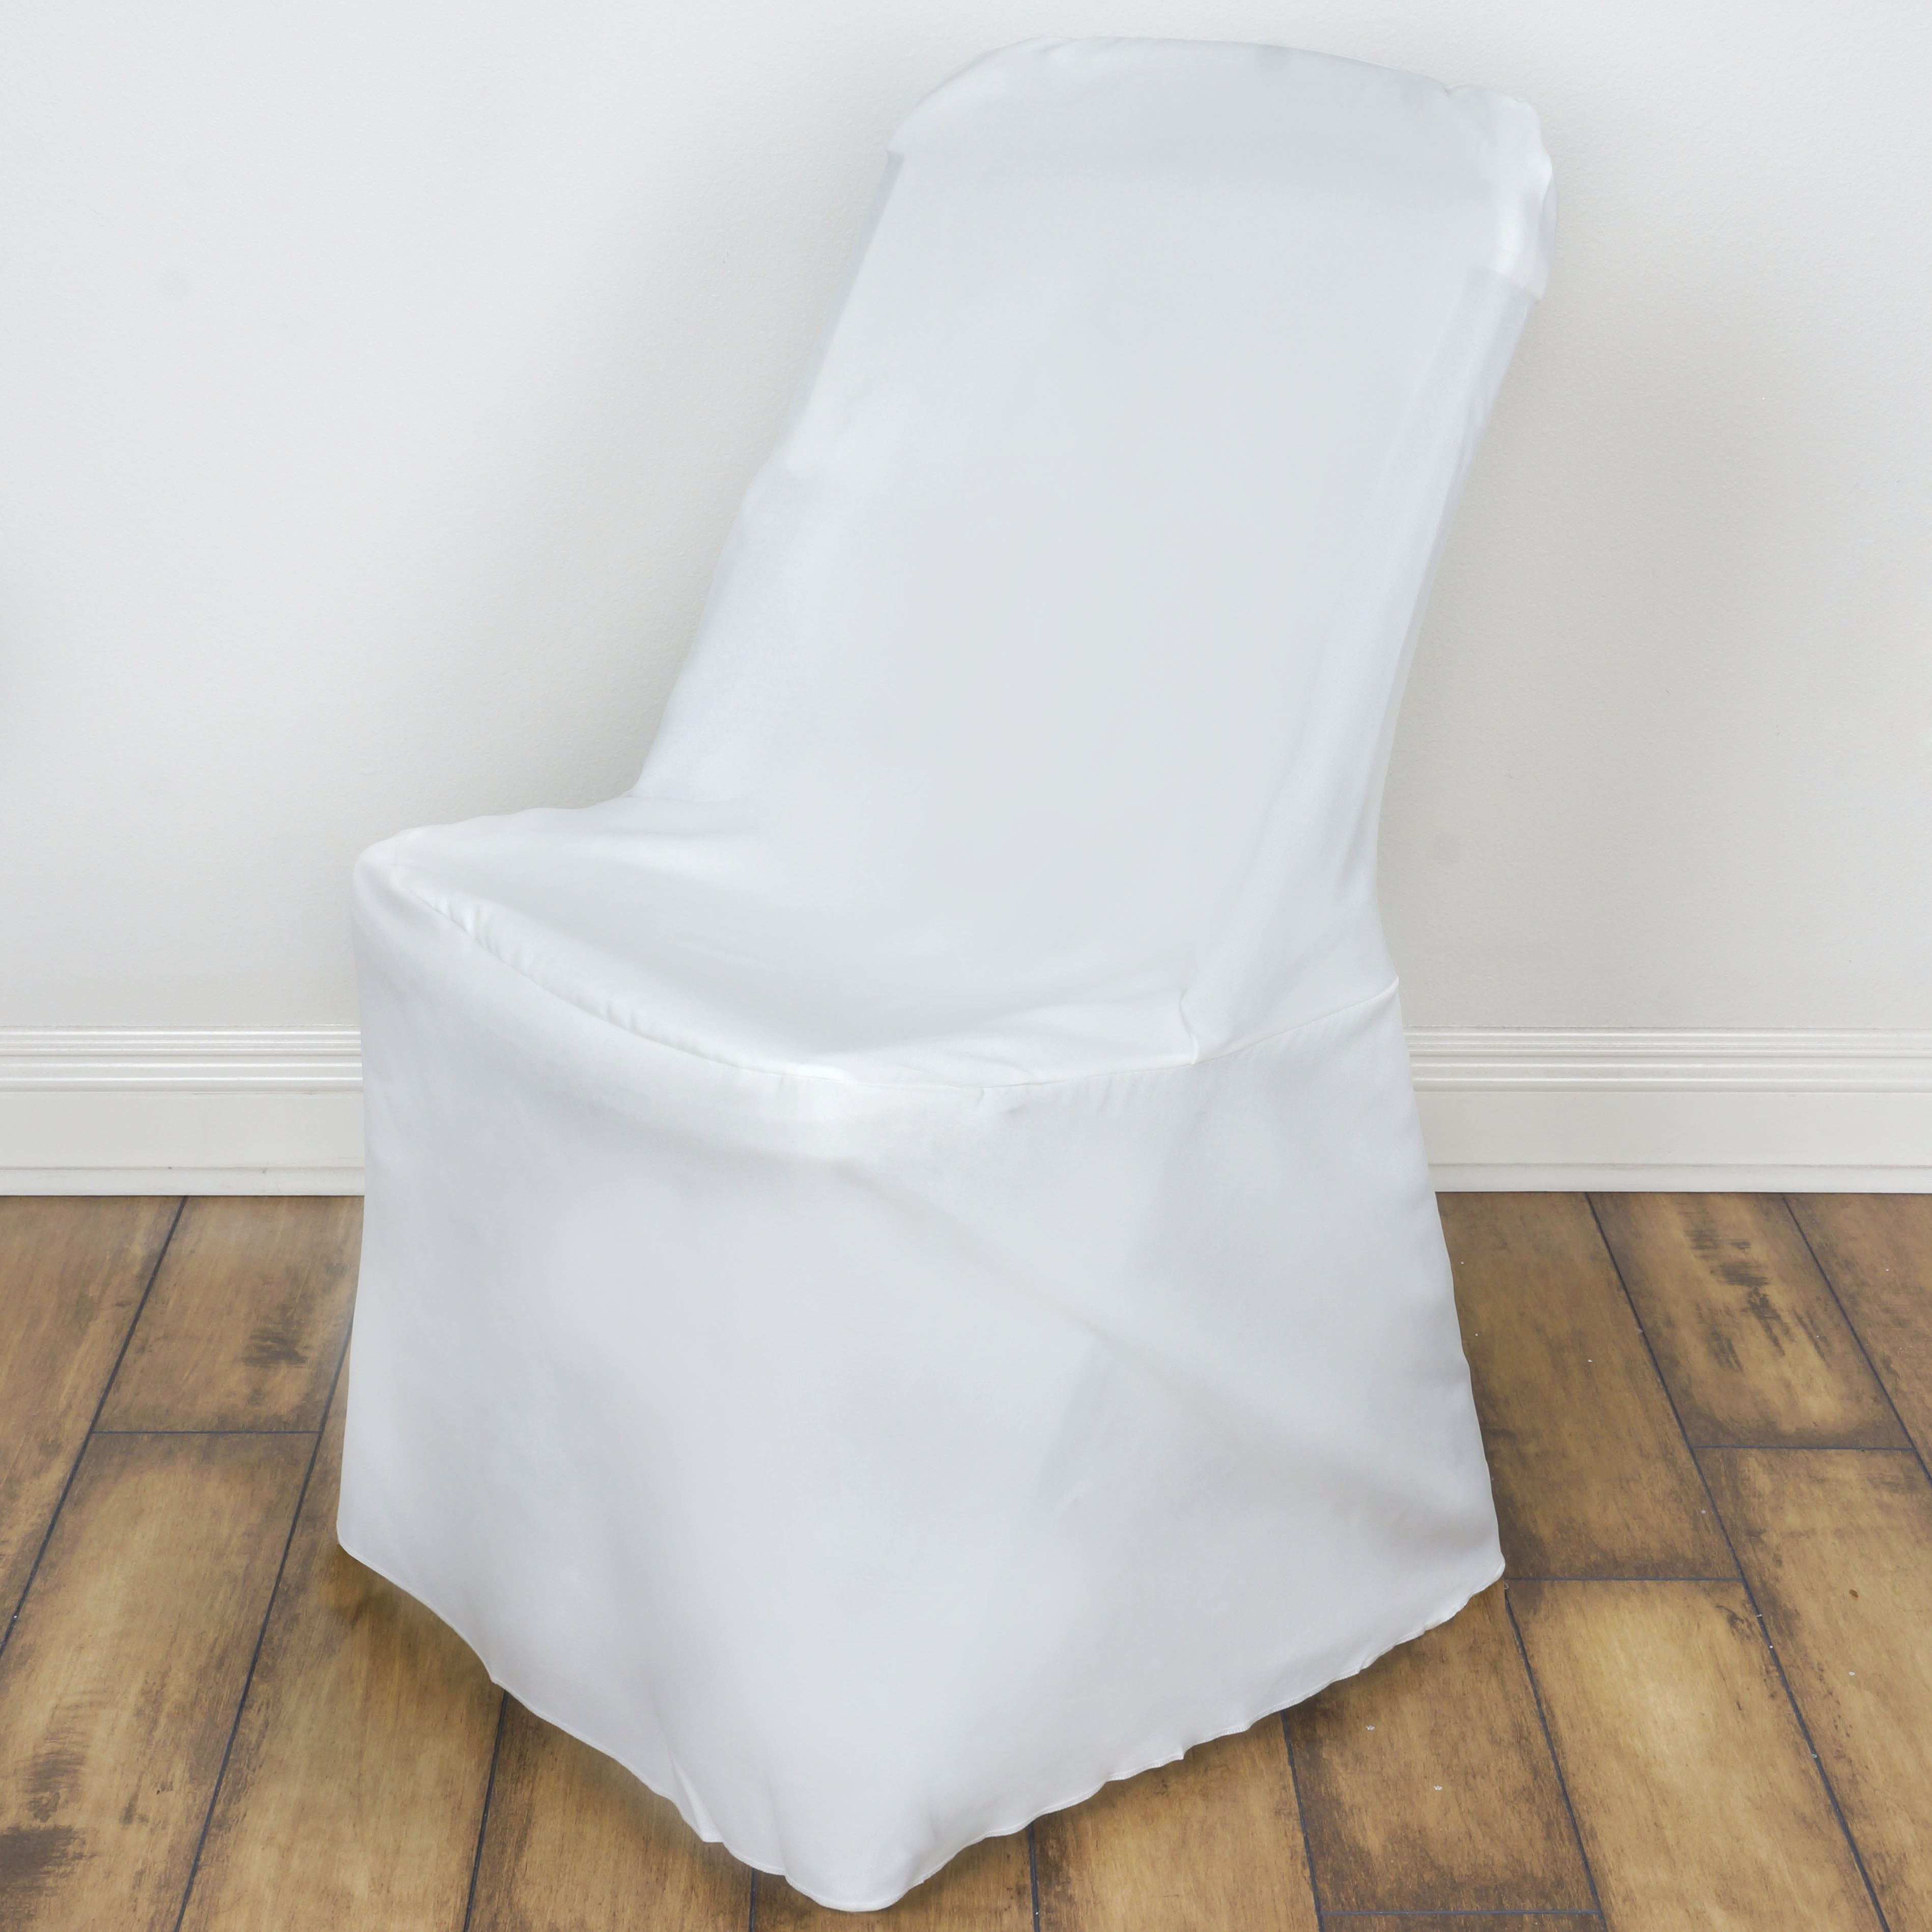 50 Ivory LIFETIME FOLDING CHAIR COVERS Wedding Party Reception Decorations